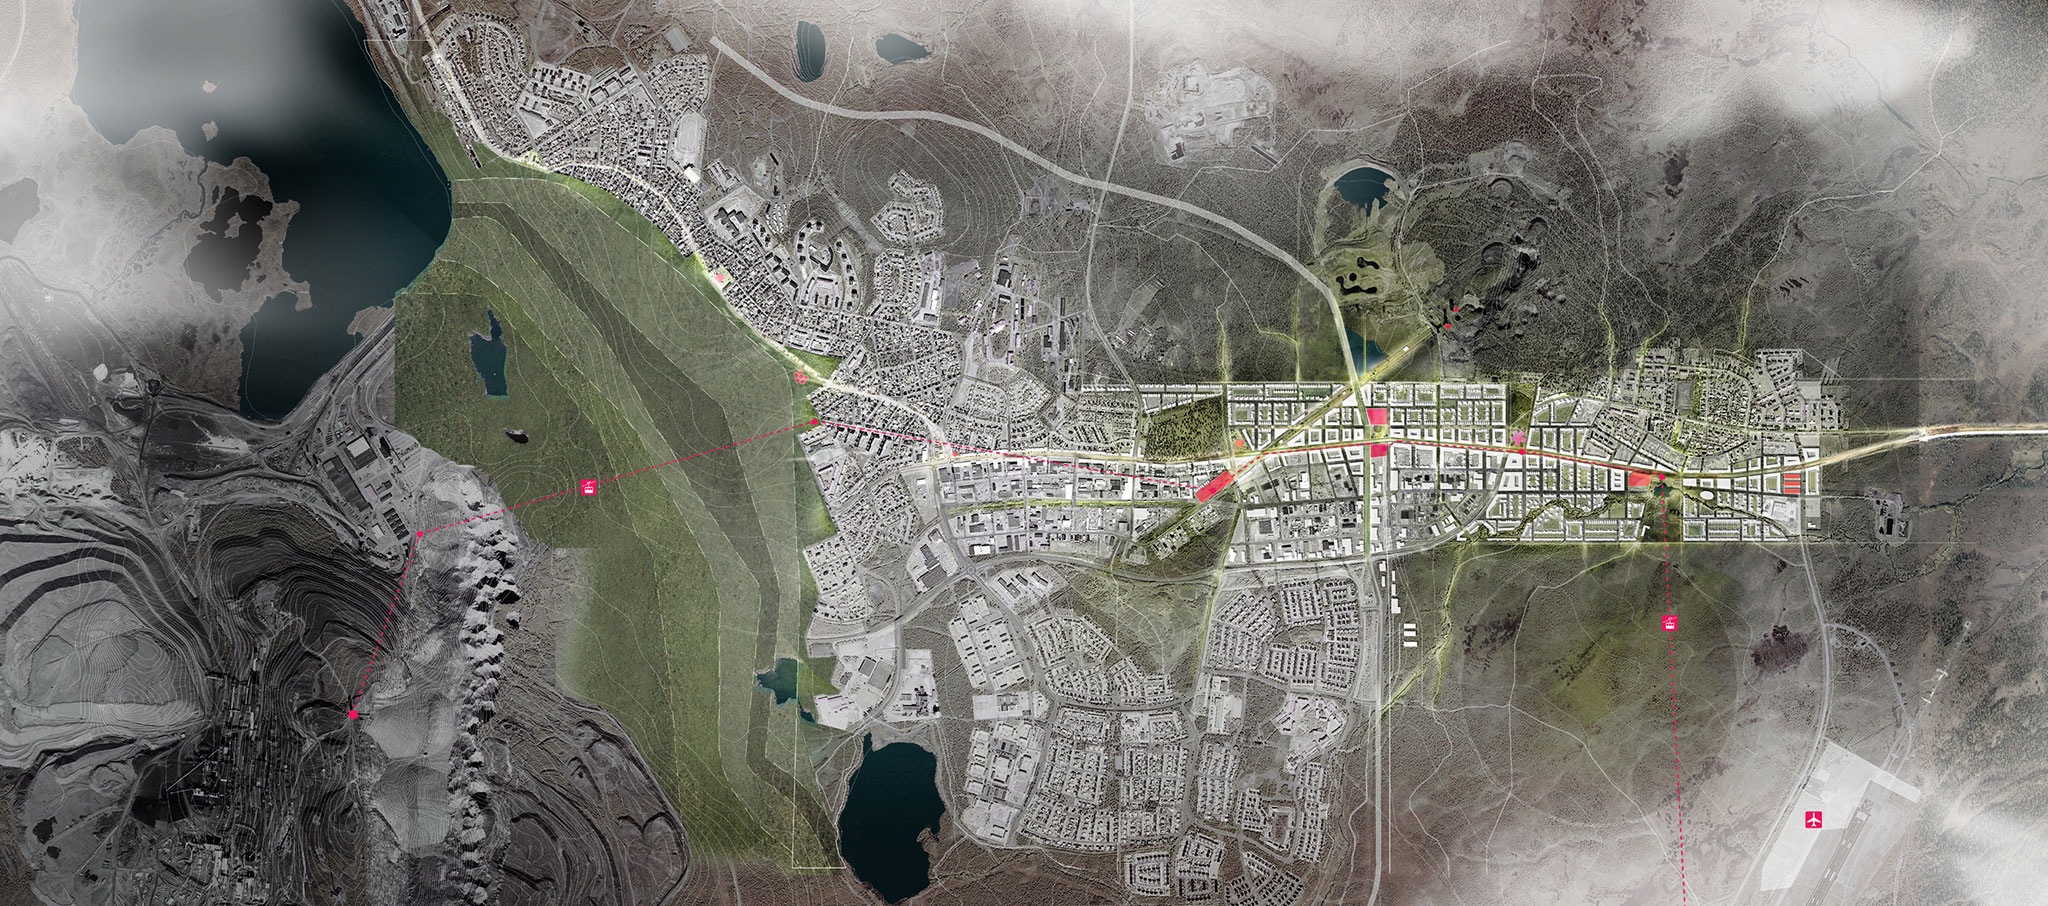 Overview. New Kiruna project. Image courtesy of White and Tegmark